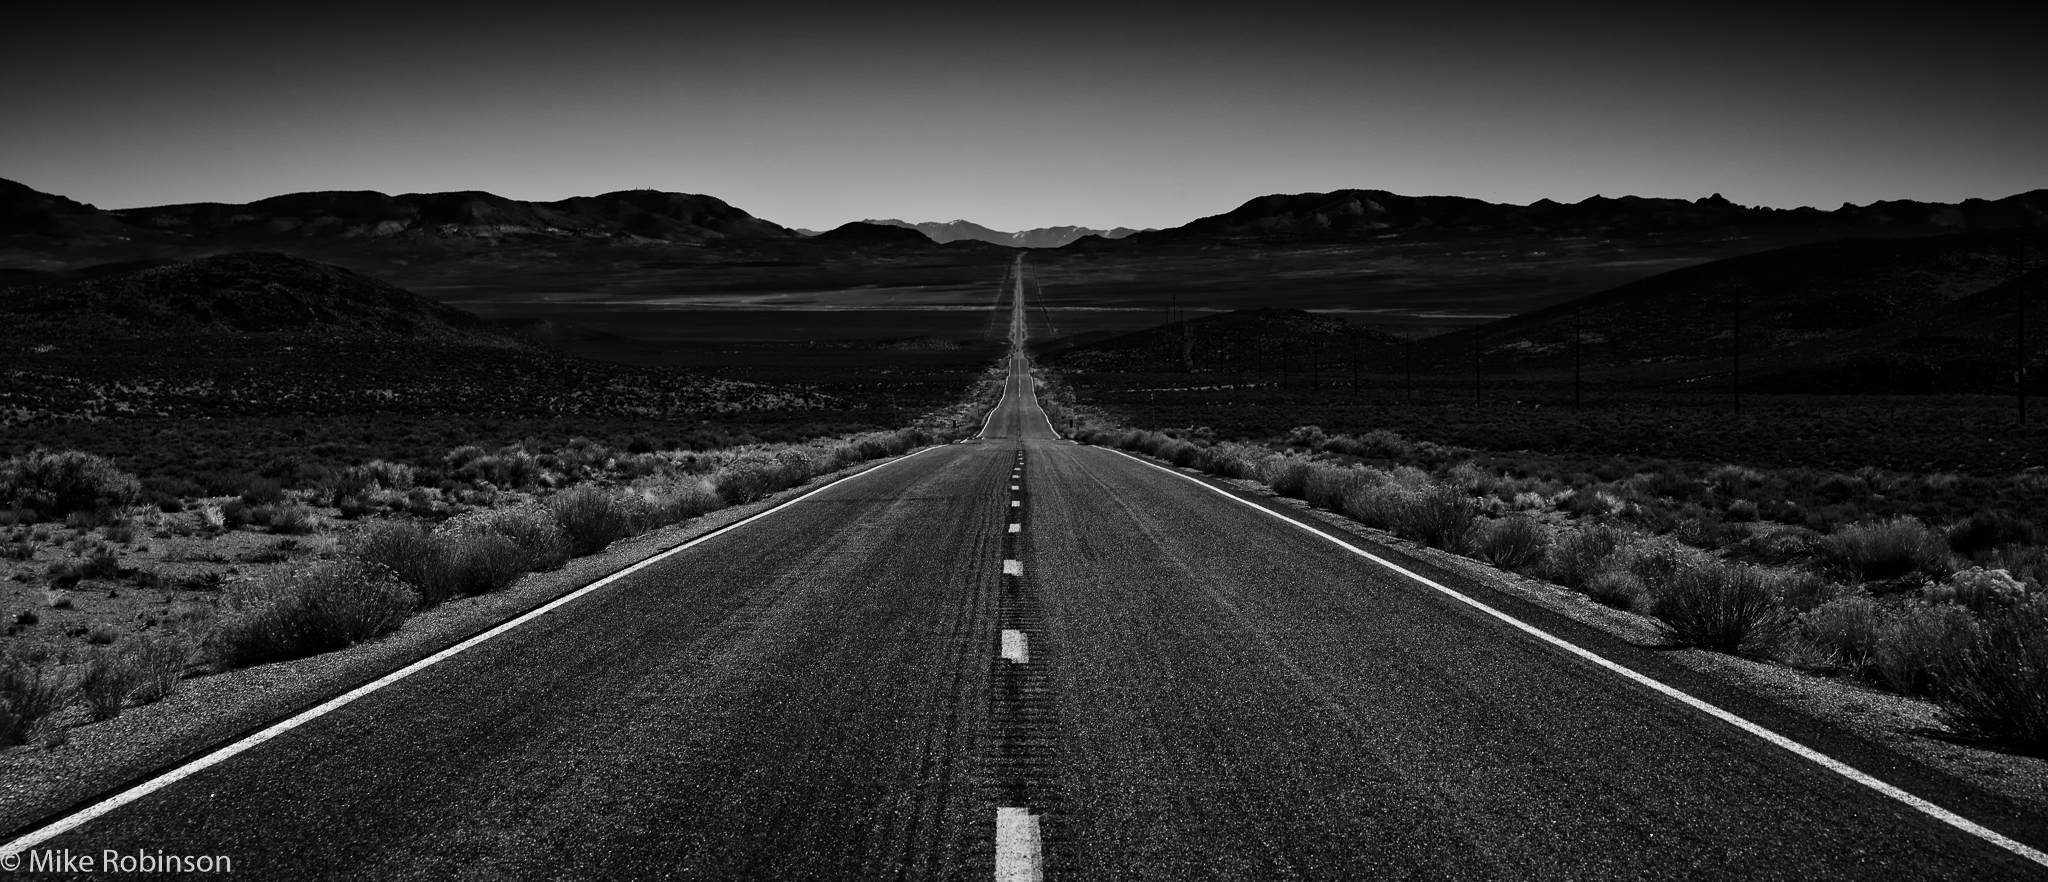 Nevada_Endless_Road_BW